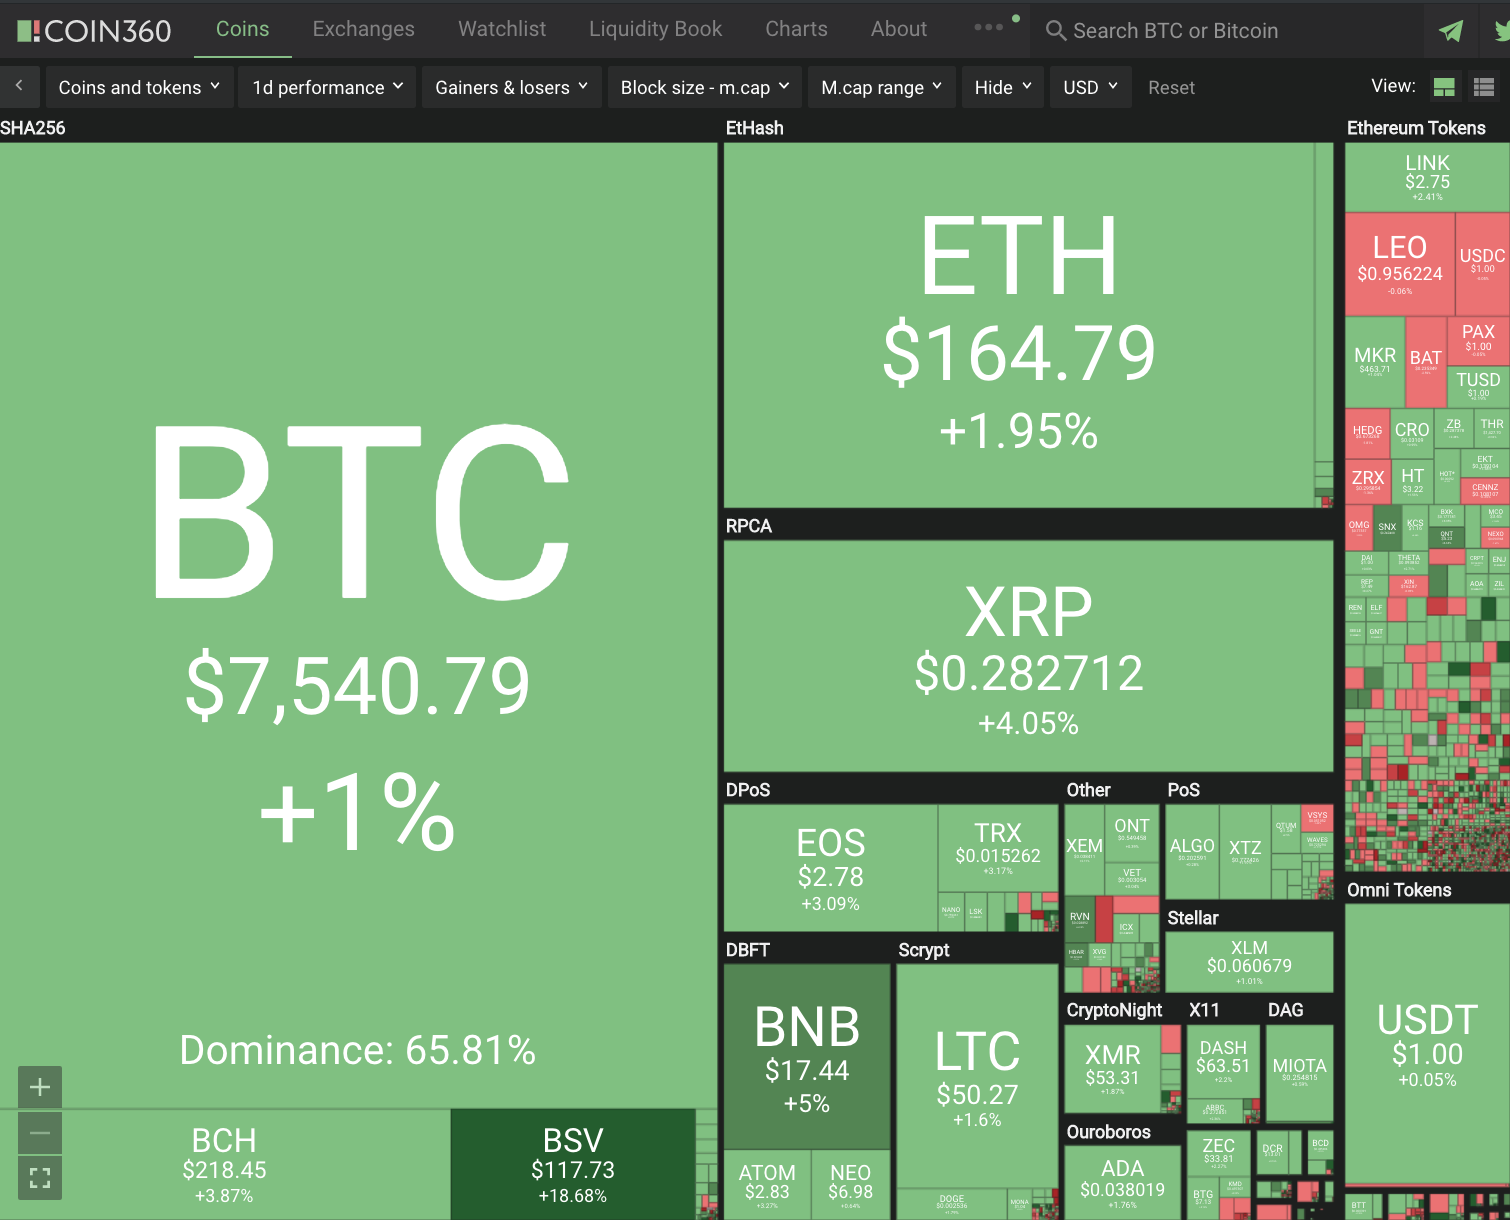 Cryptocurrency Double Digit+ Gains #242